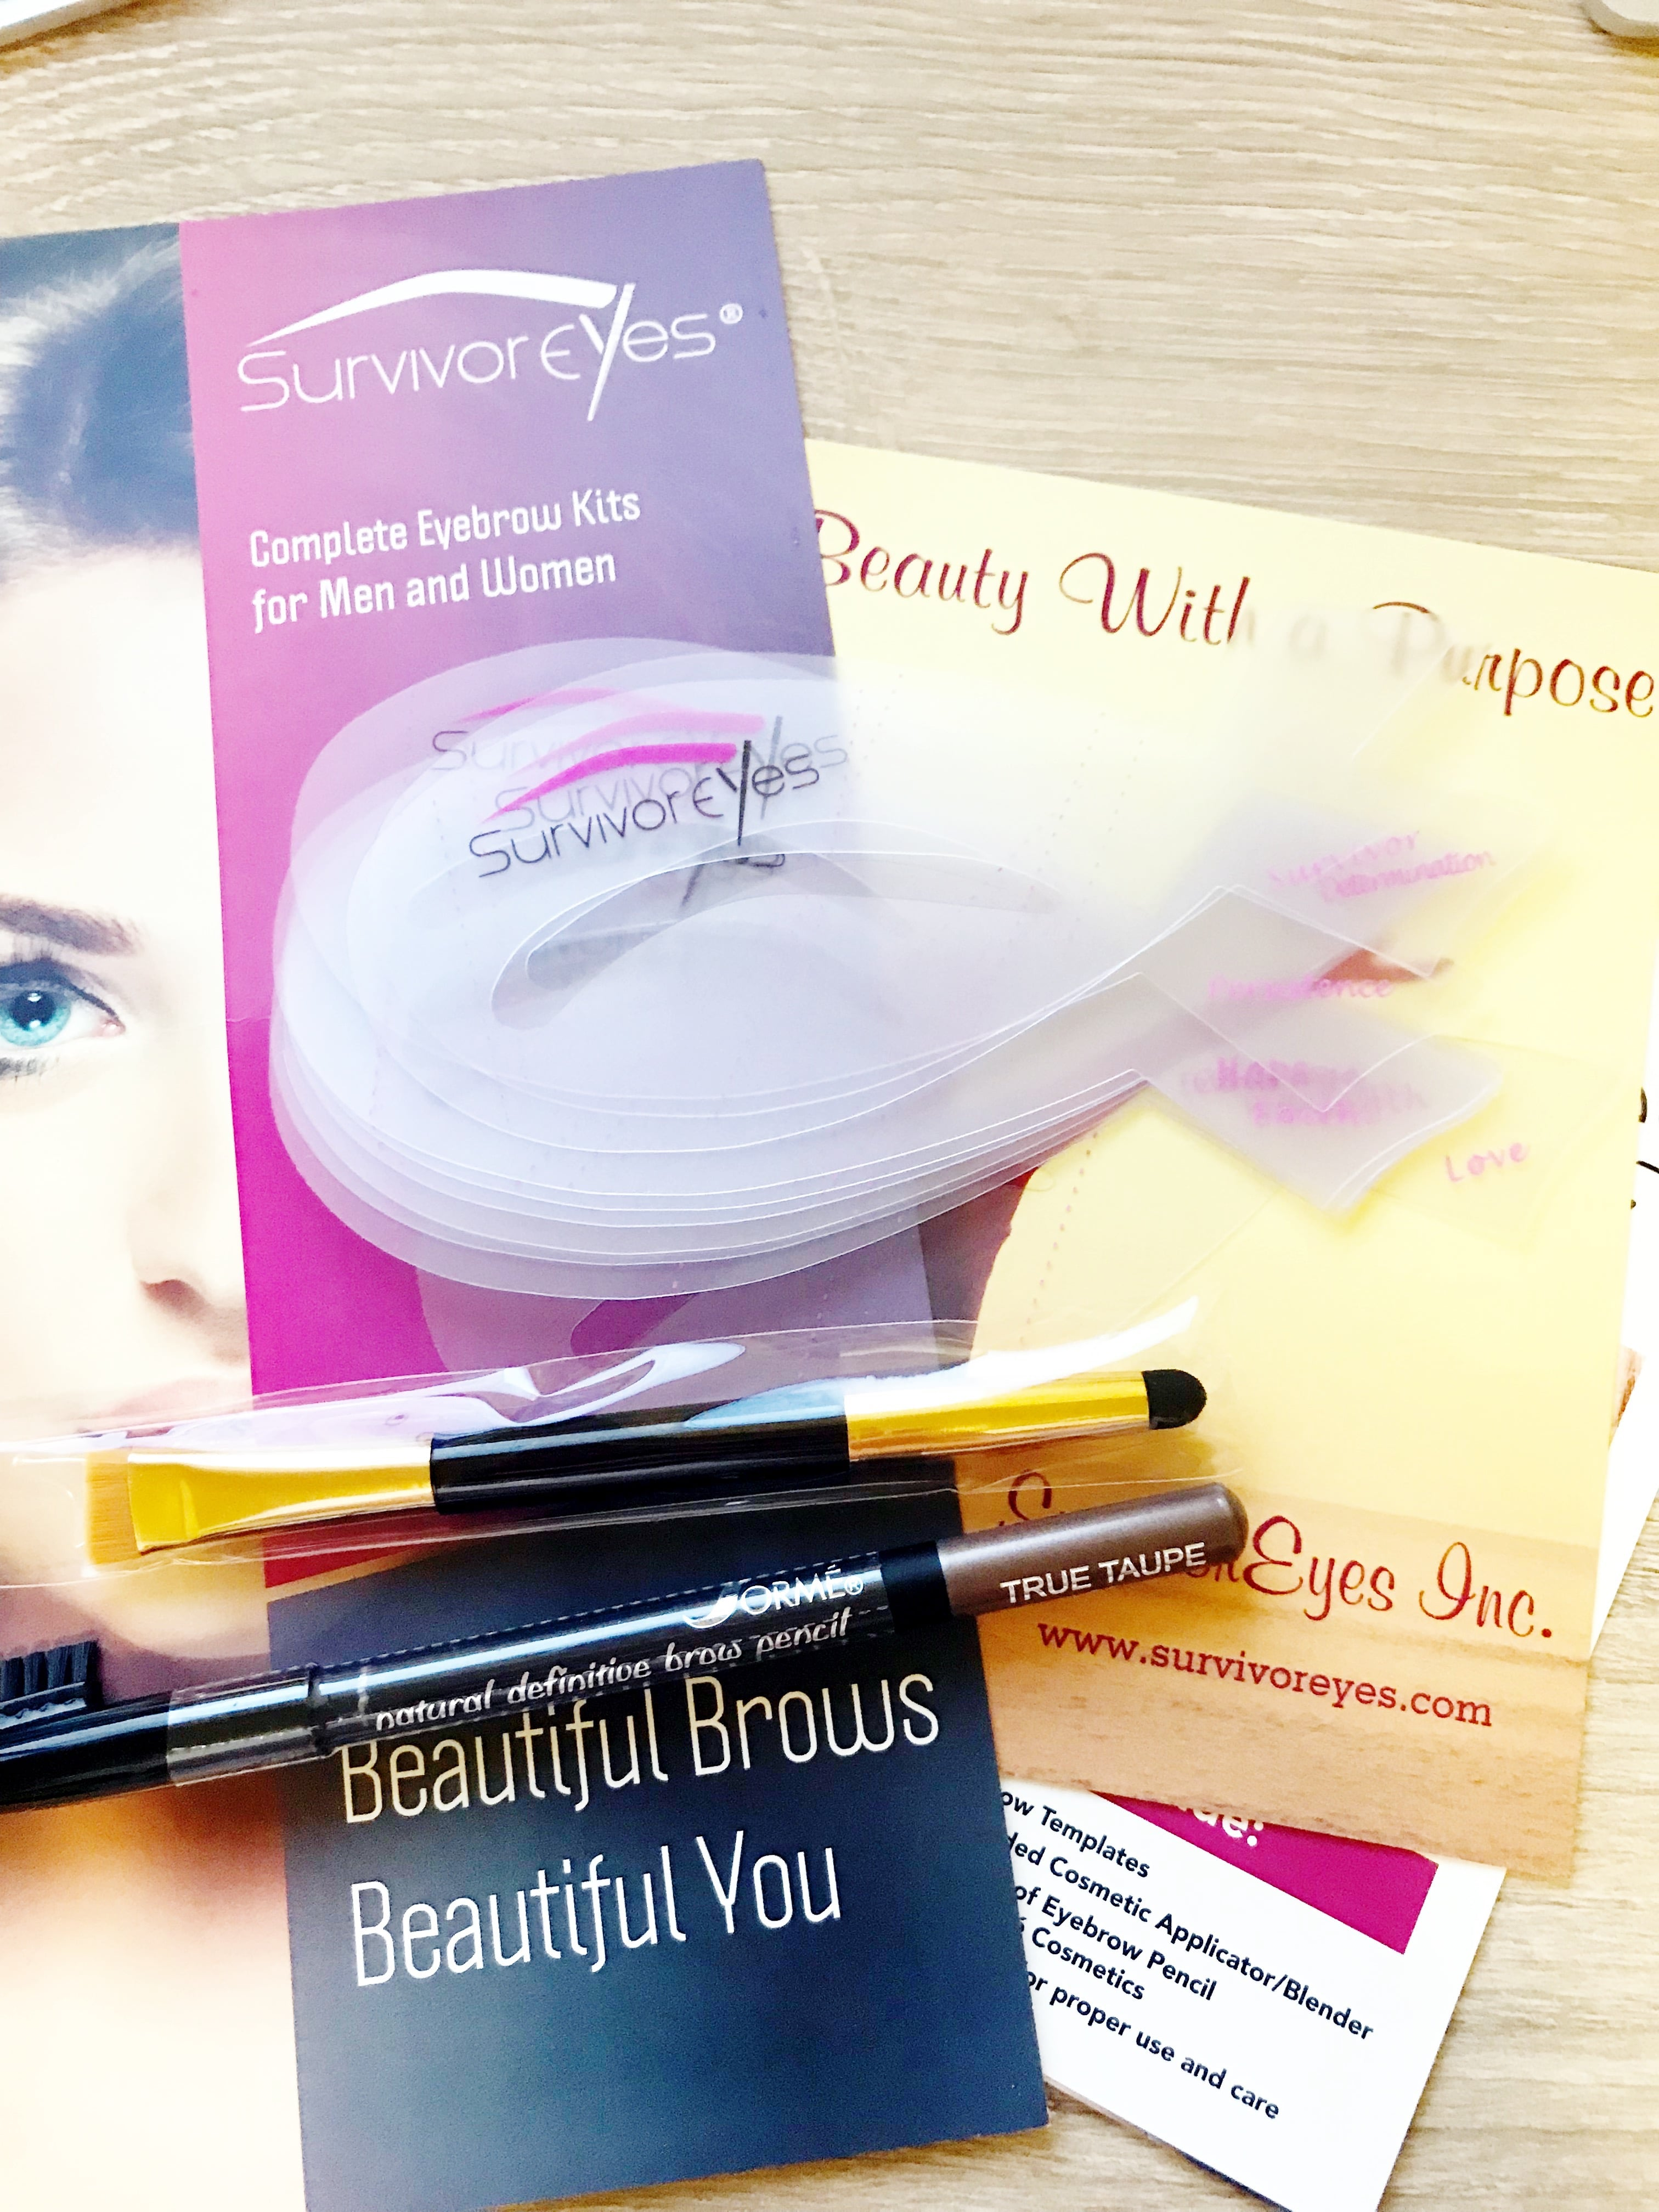 Survivor Eyes - Product Review